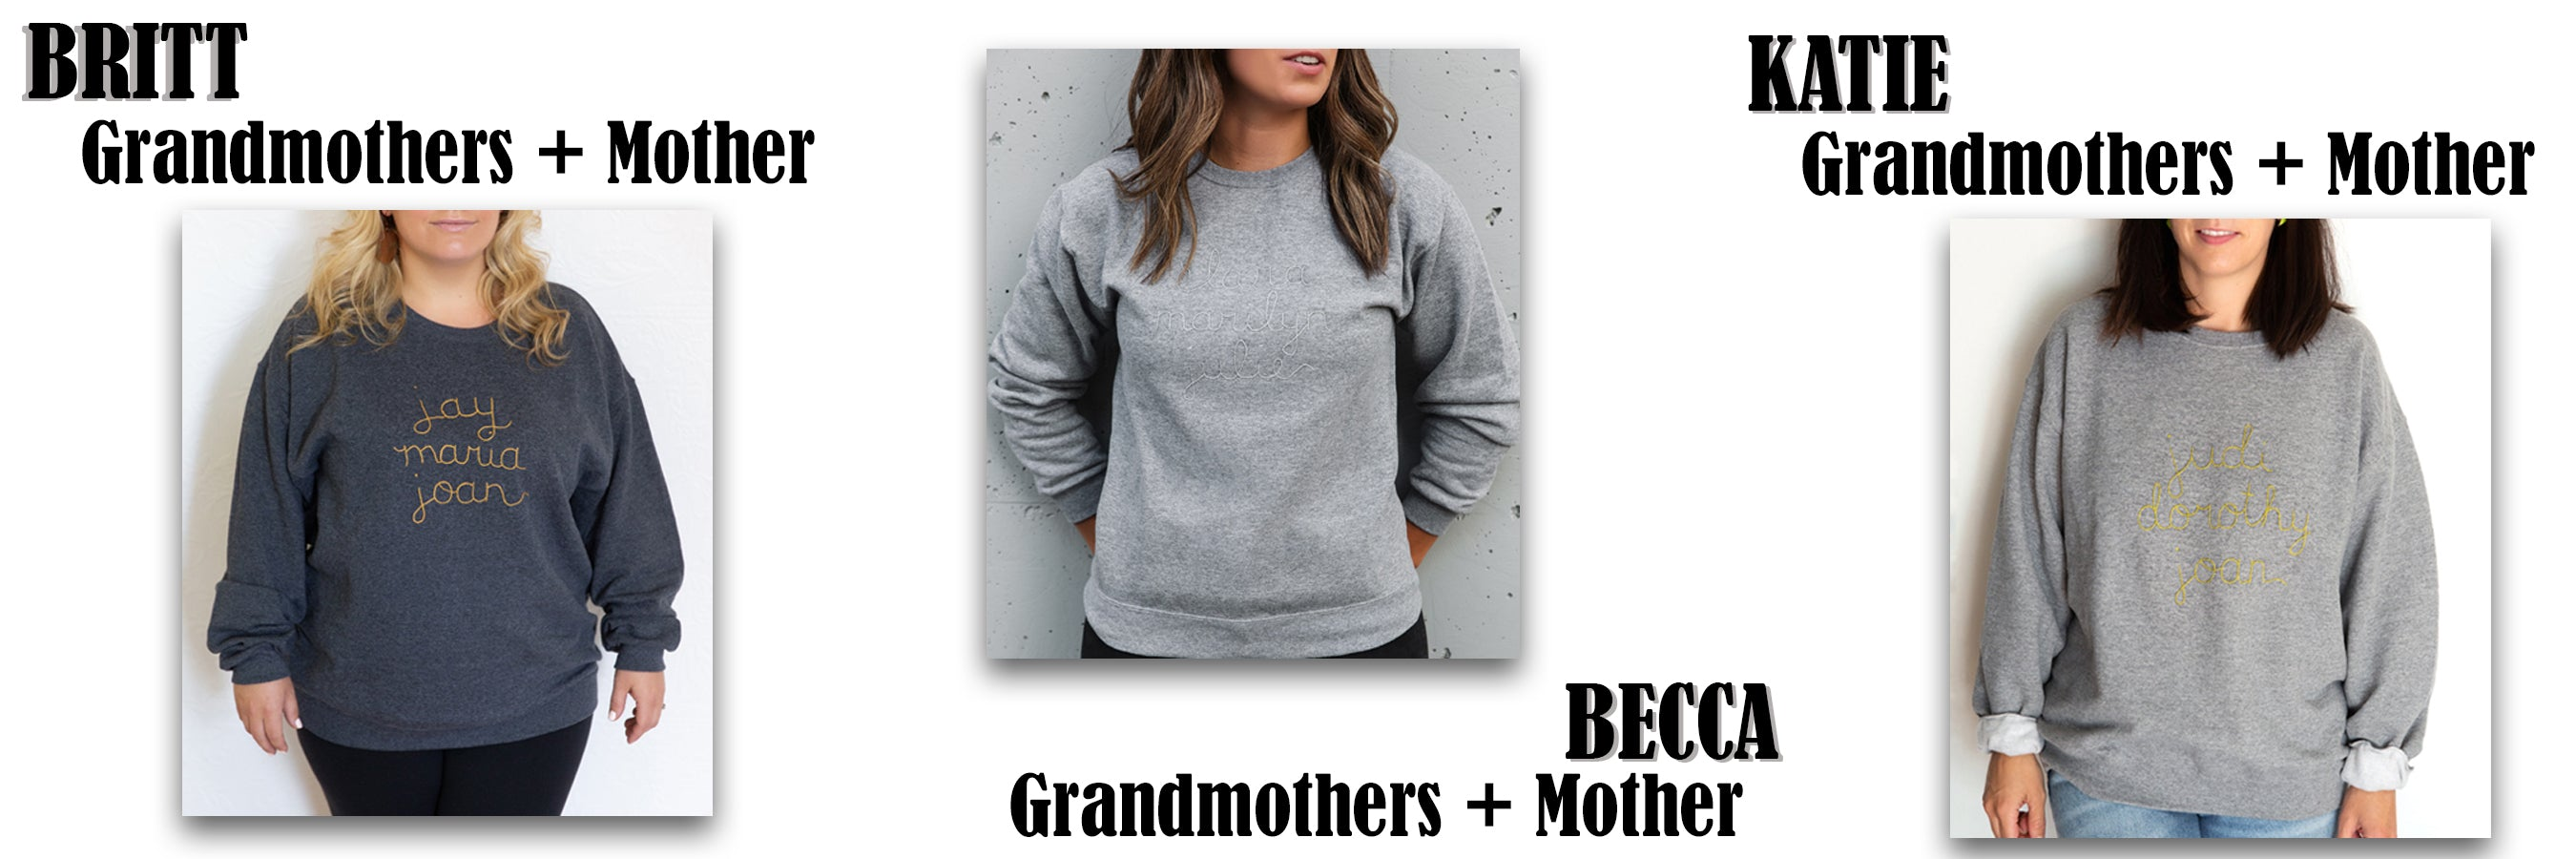 customized femme sweater with grandmothers and mothers name hand embroidered on it